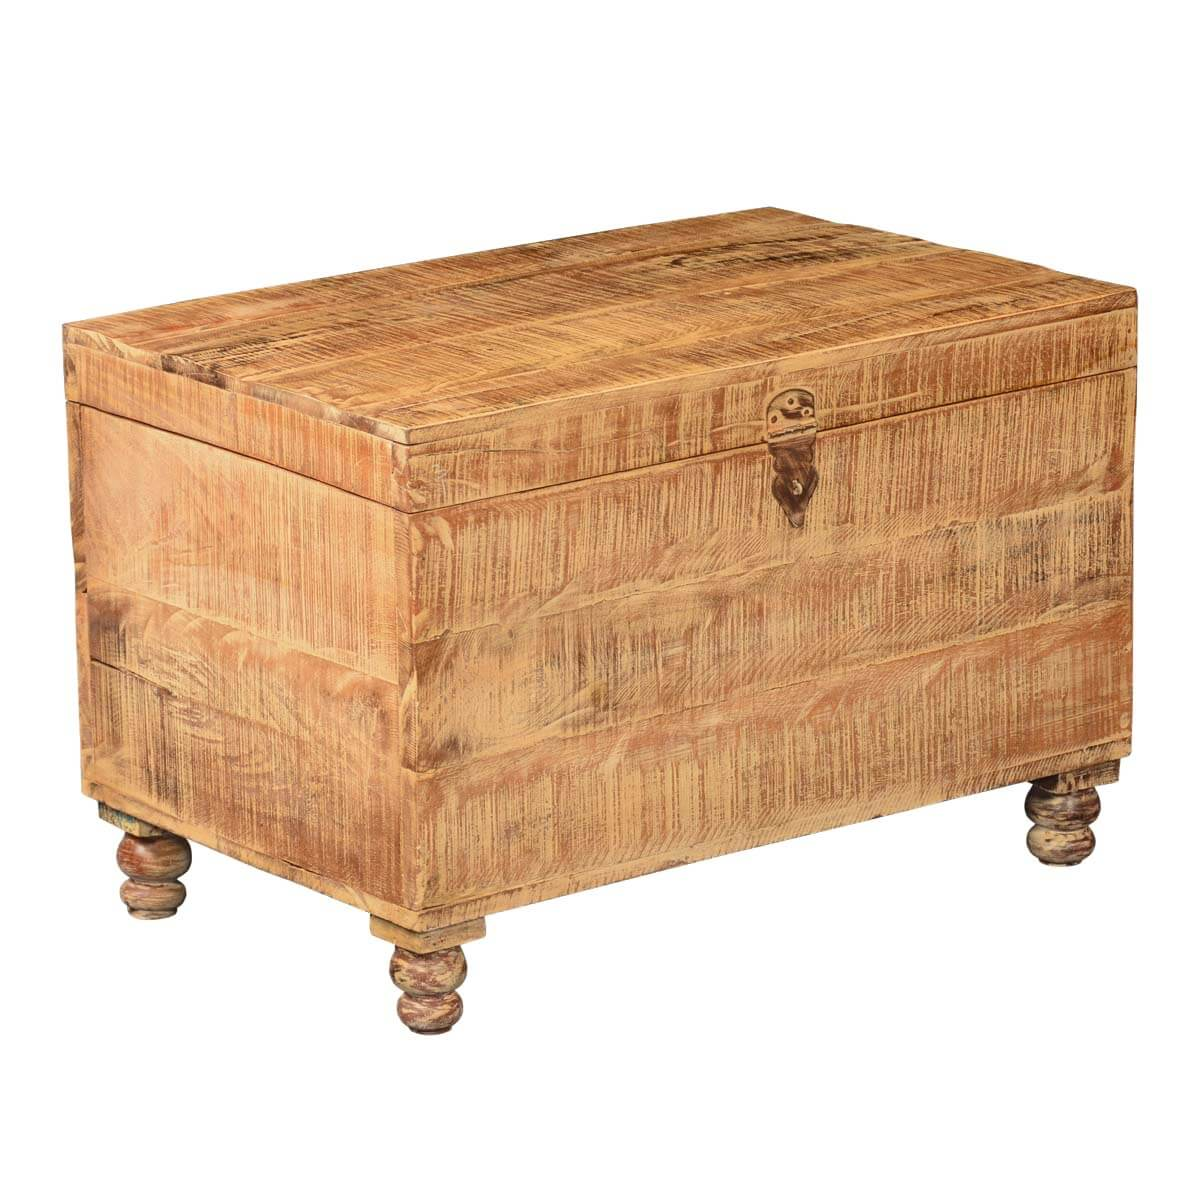 Rustic Wheat Mango Wood Standing Coffee Table Storage Chest